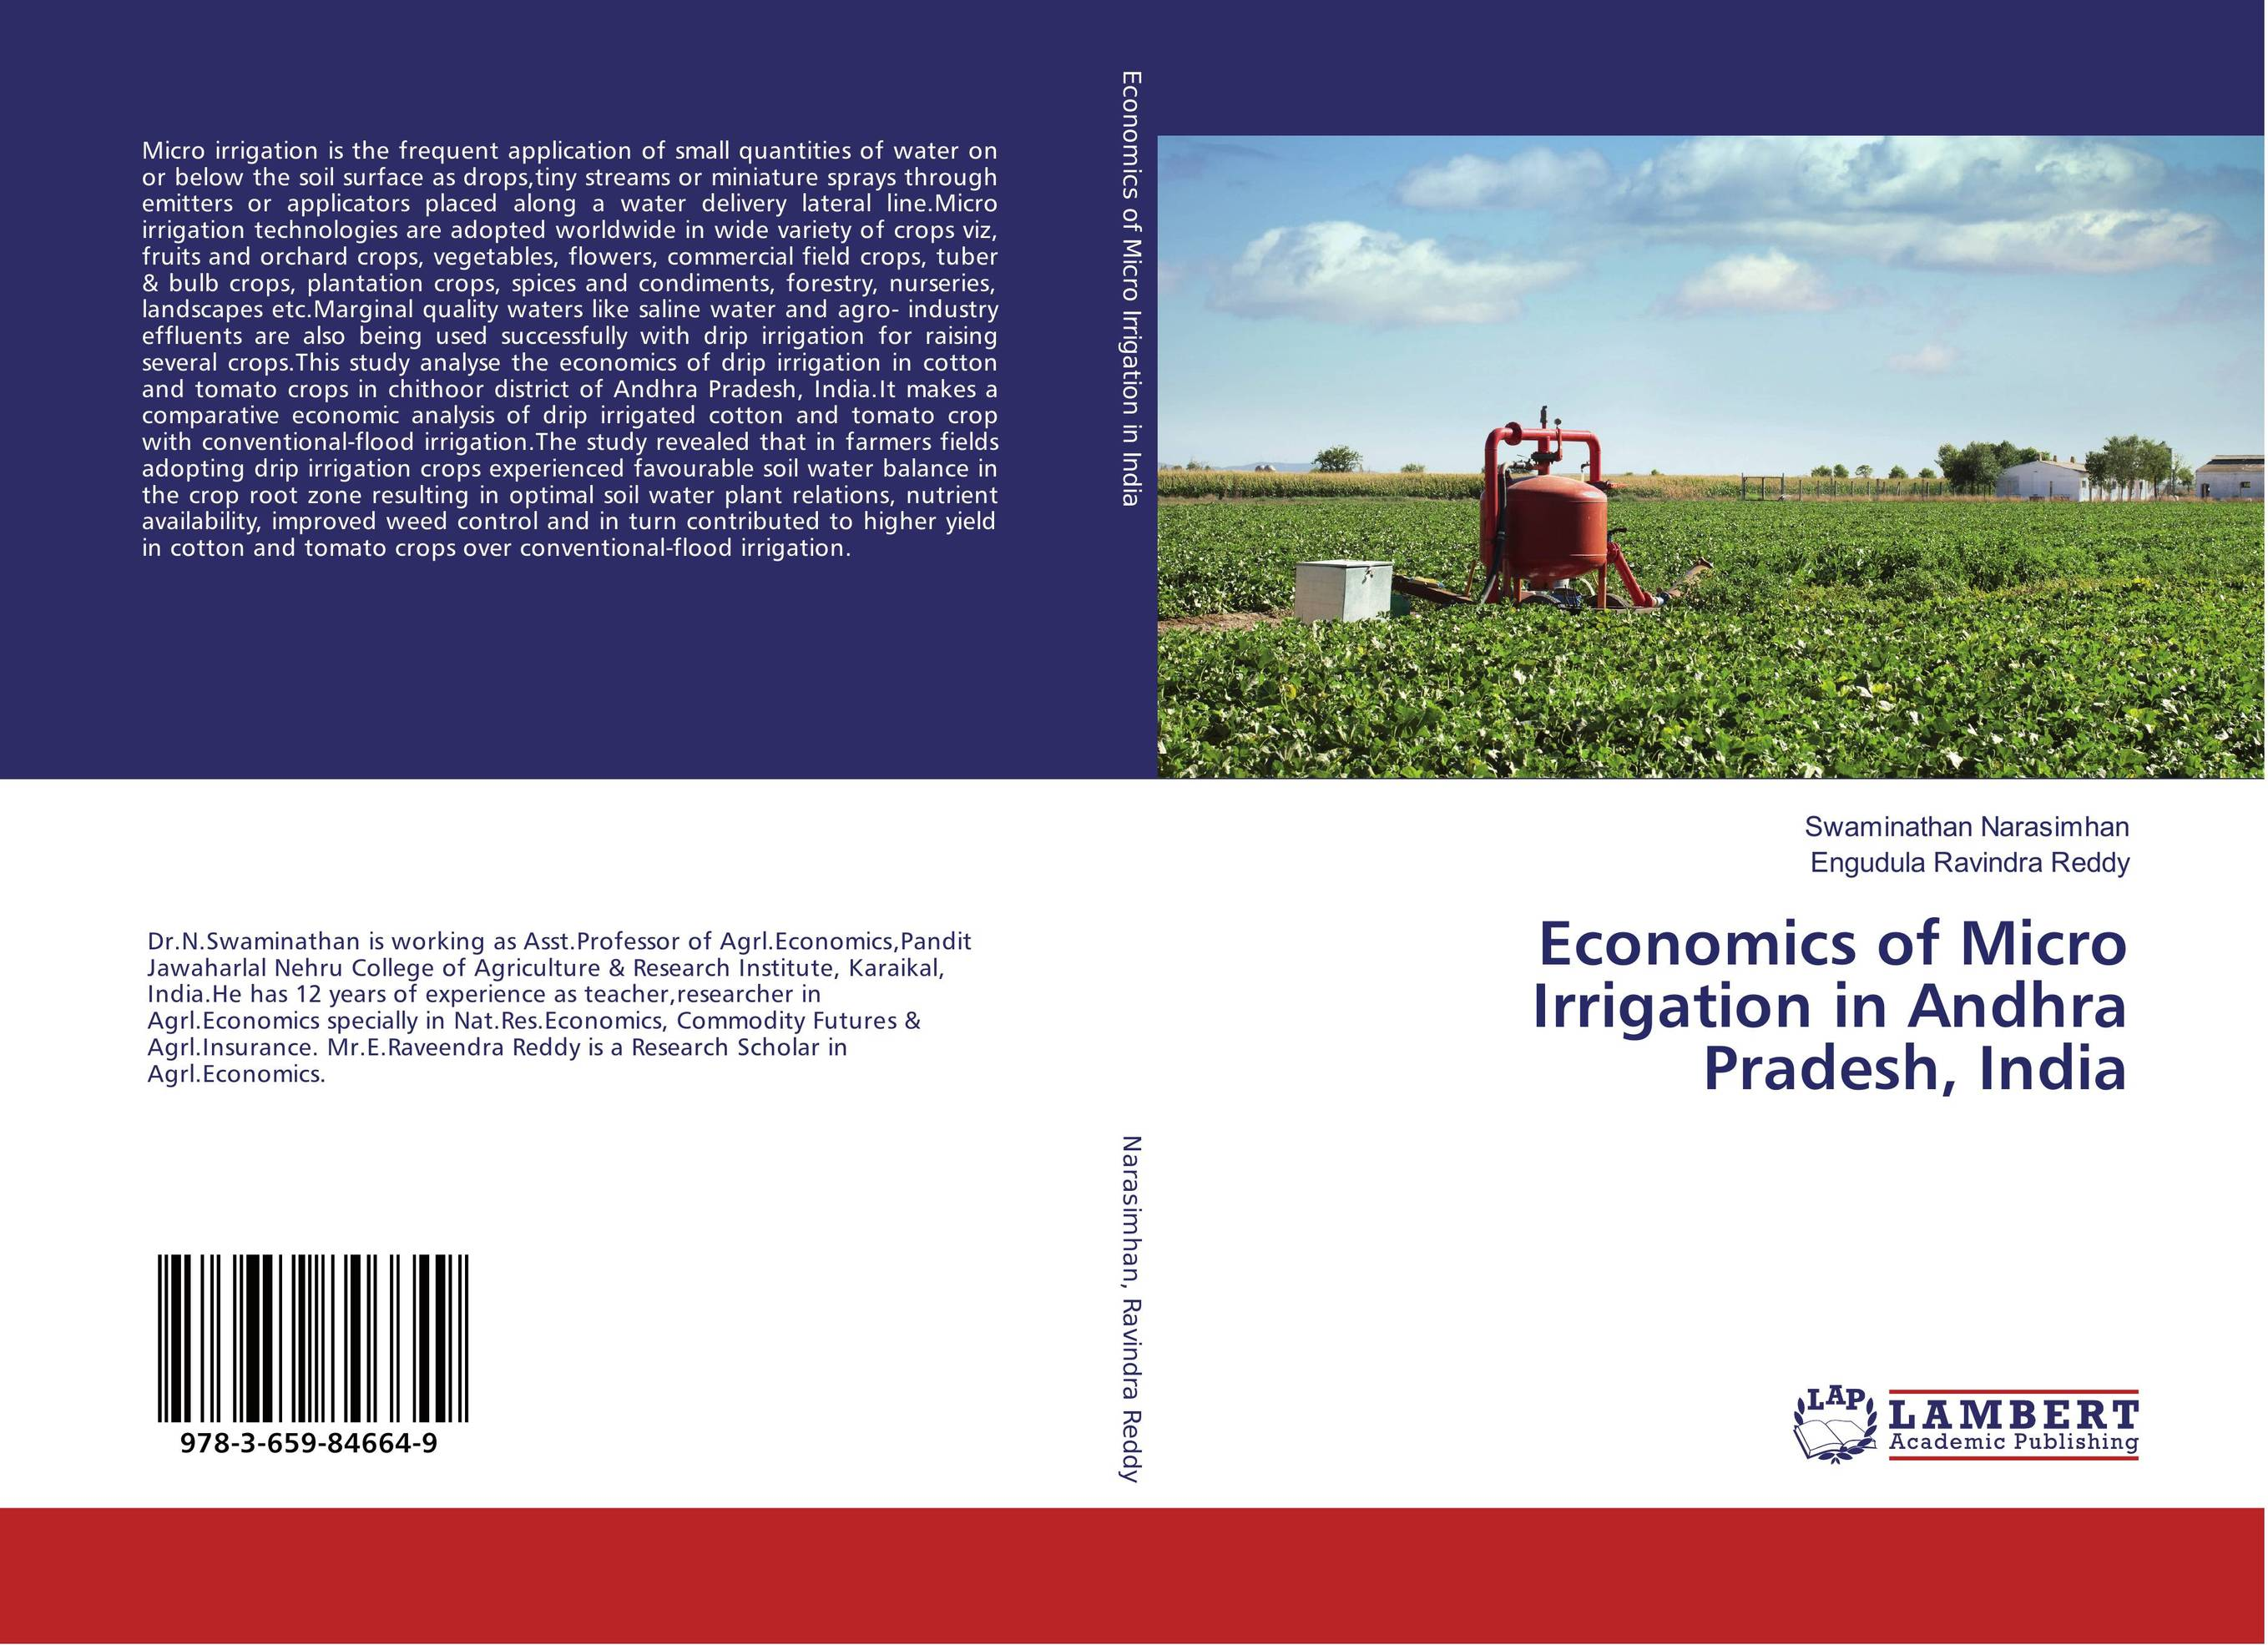 Economics of Micro Irrigation in Andhra Pradesh, India geochemistry of groundwater in a river basin of andhra pradesh india